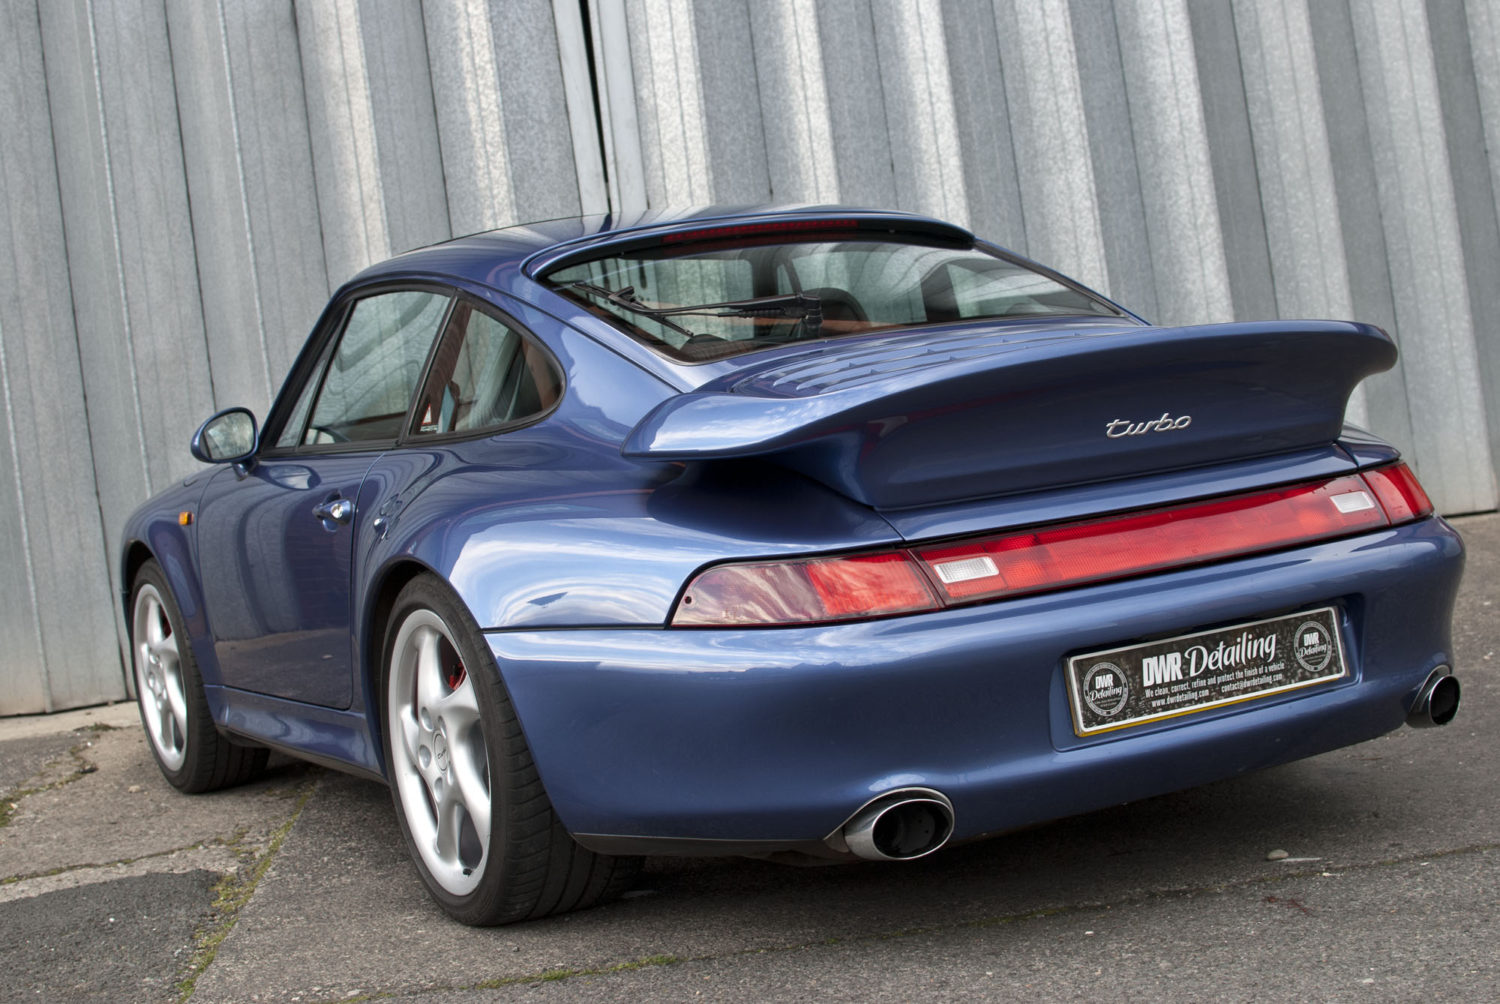 Porshce 911 (993) Detailed by DWR Detailing